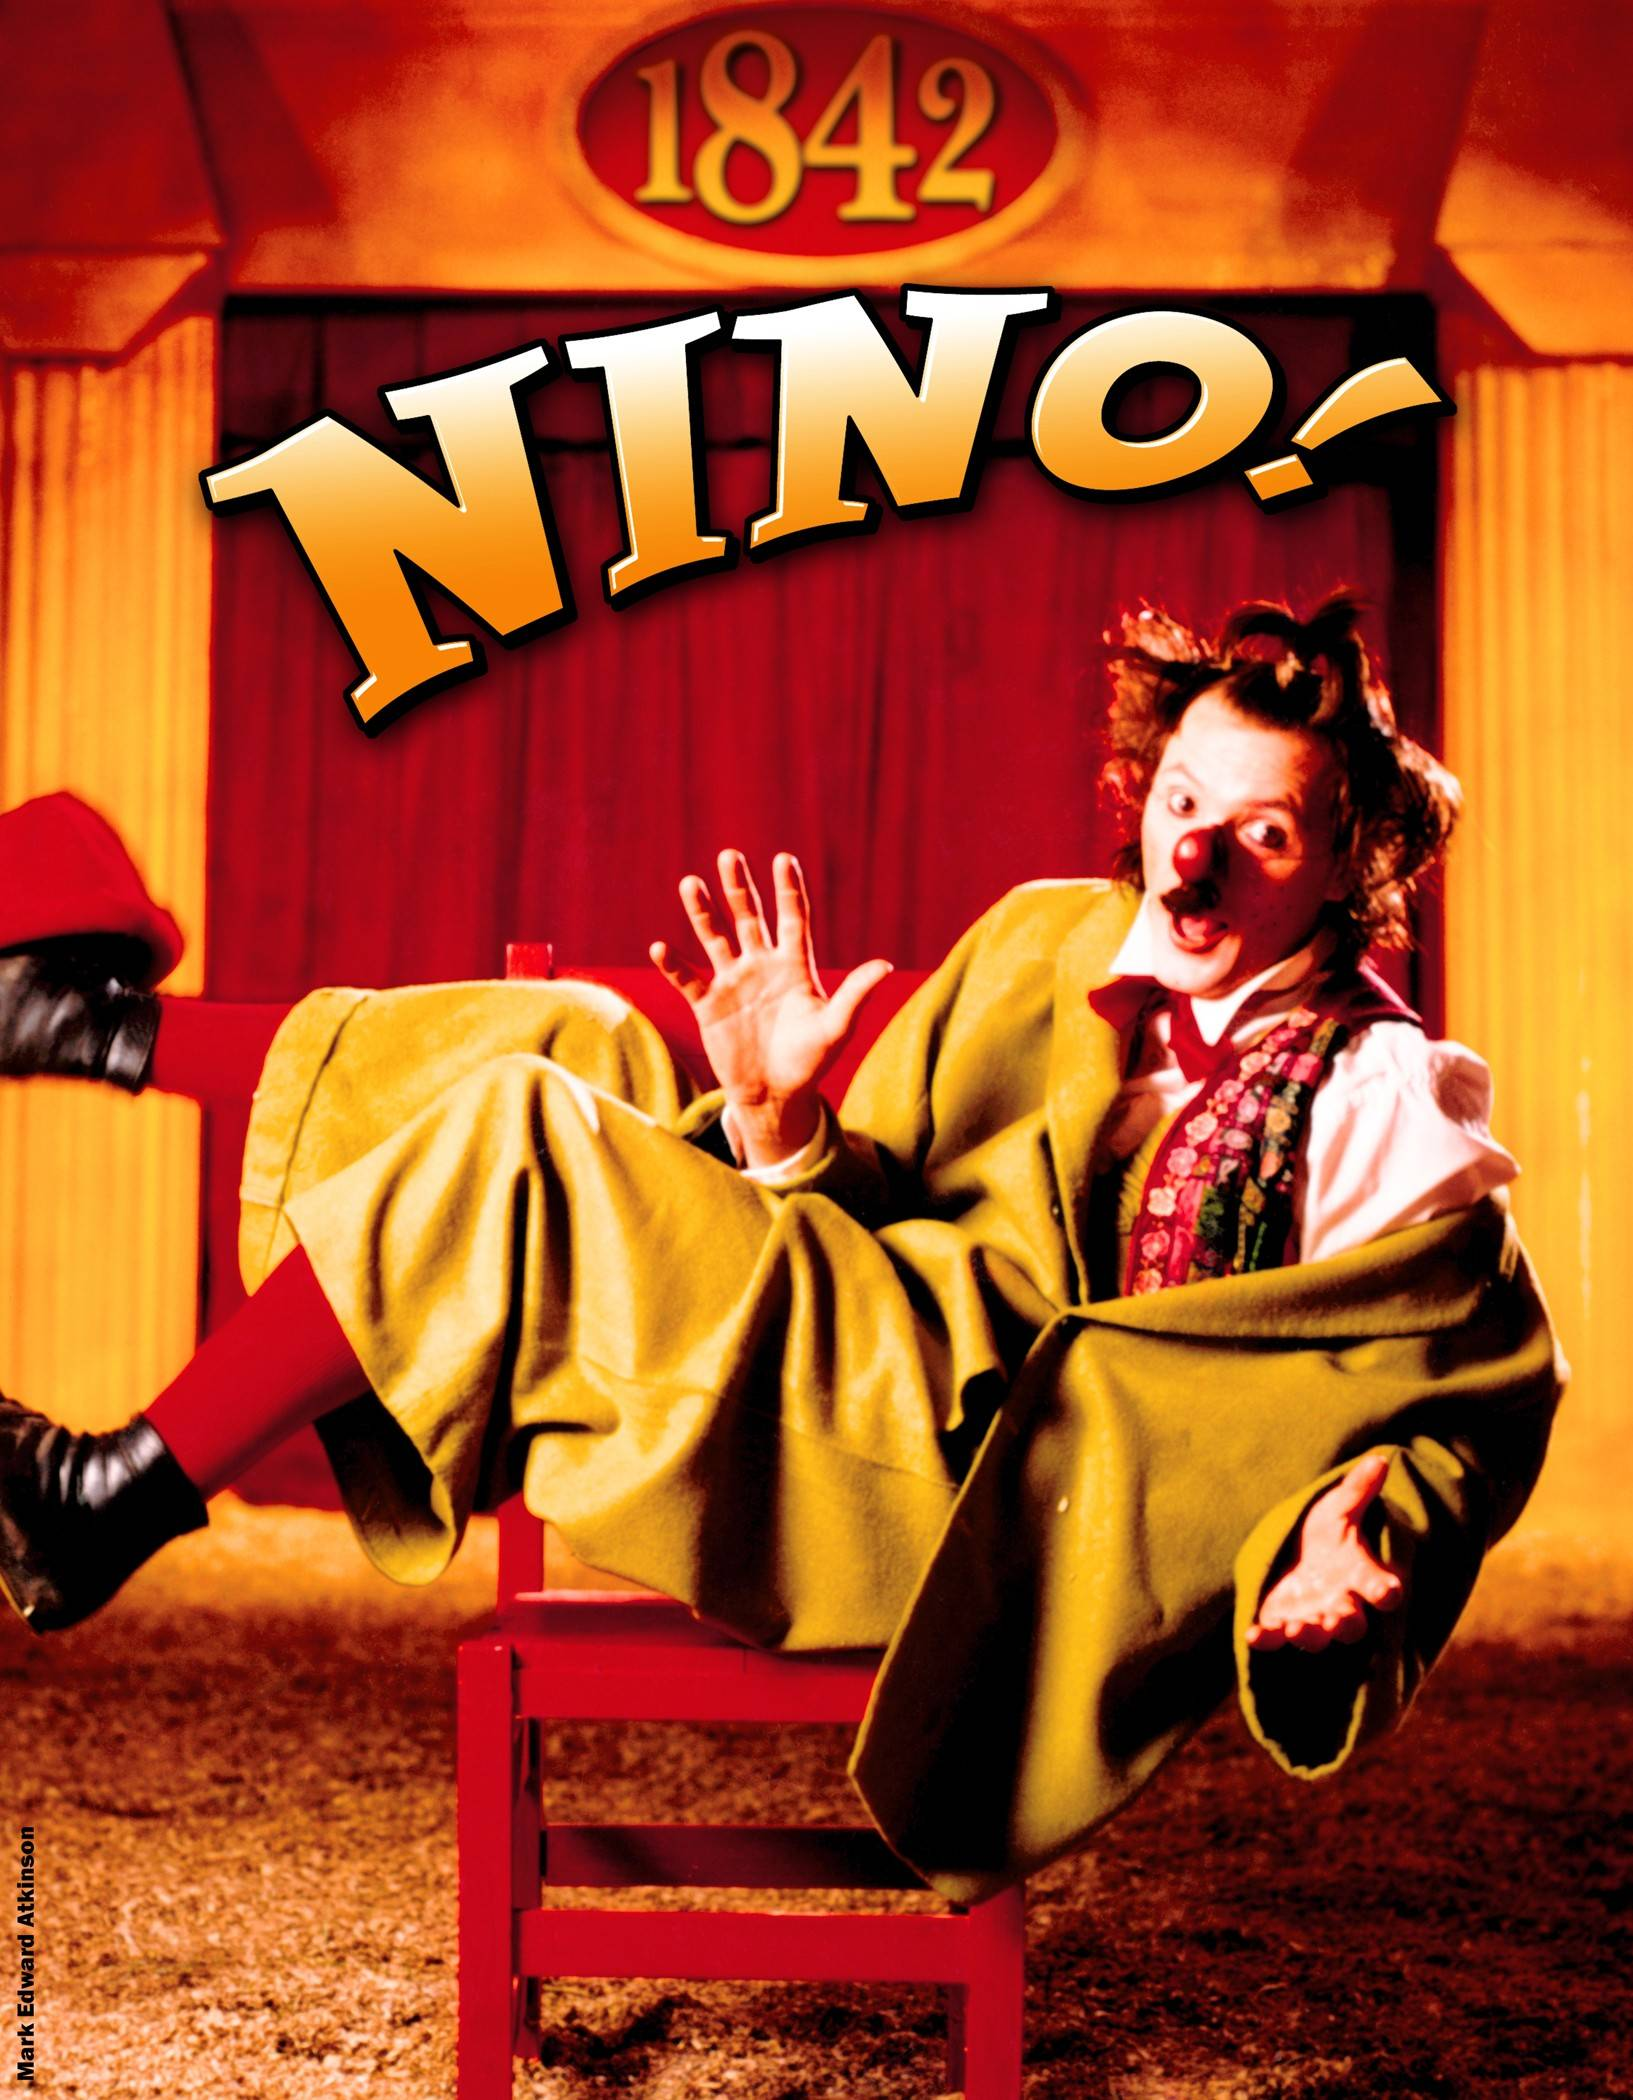 See the clown Nino as part of the Italian Family Circus Zoppé in Addison this weekend.